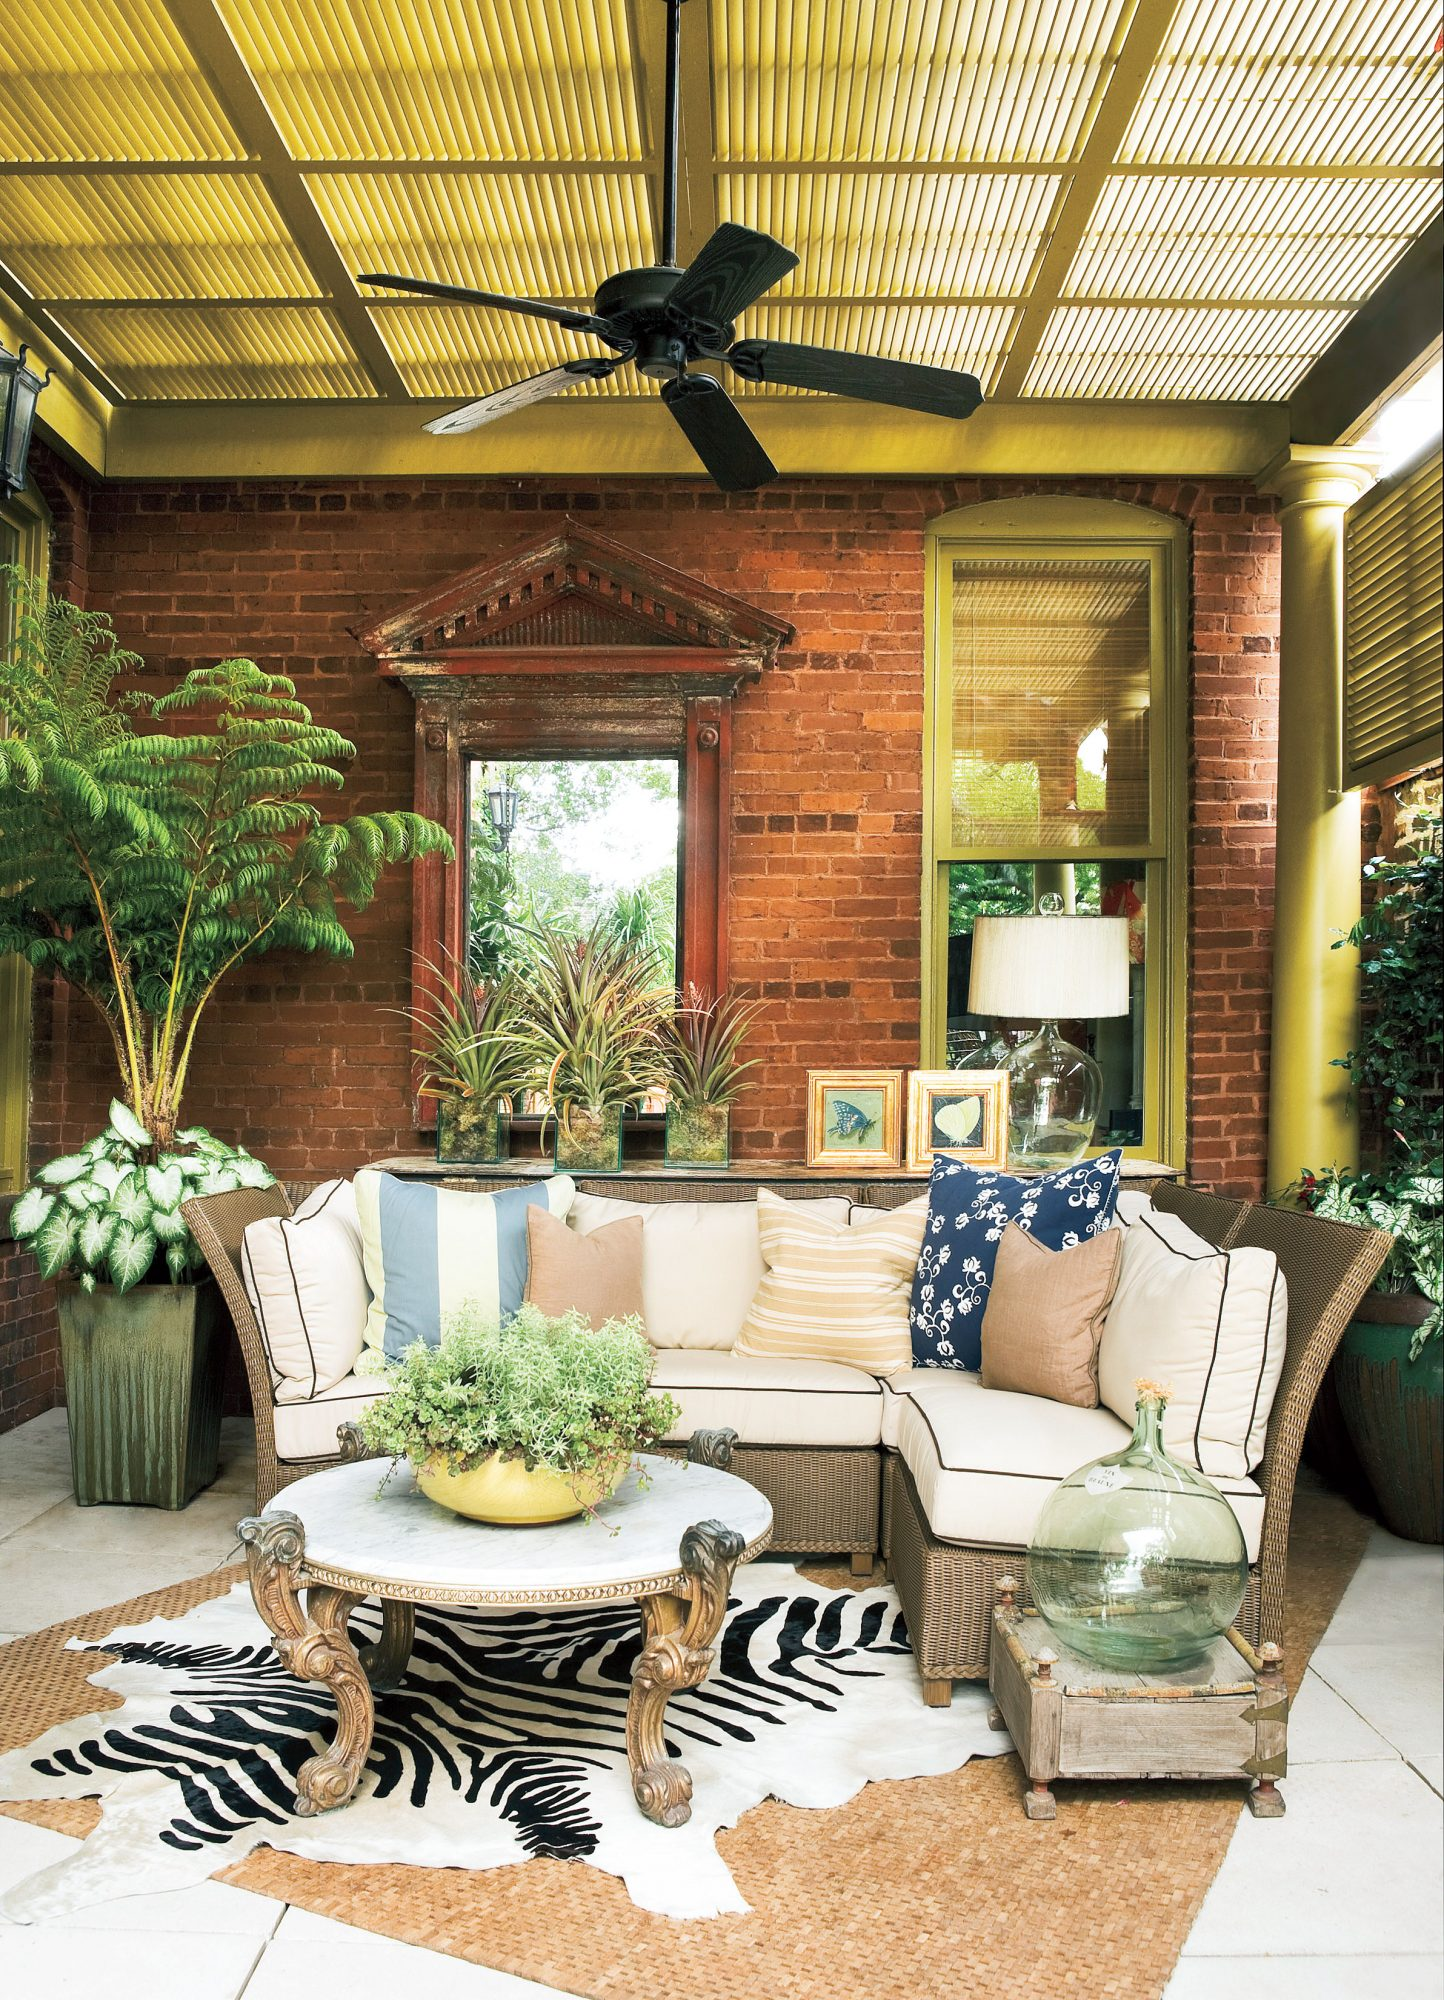 Porch Decorating Ideas: Columns